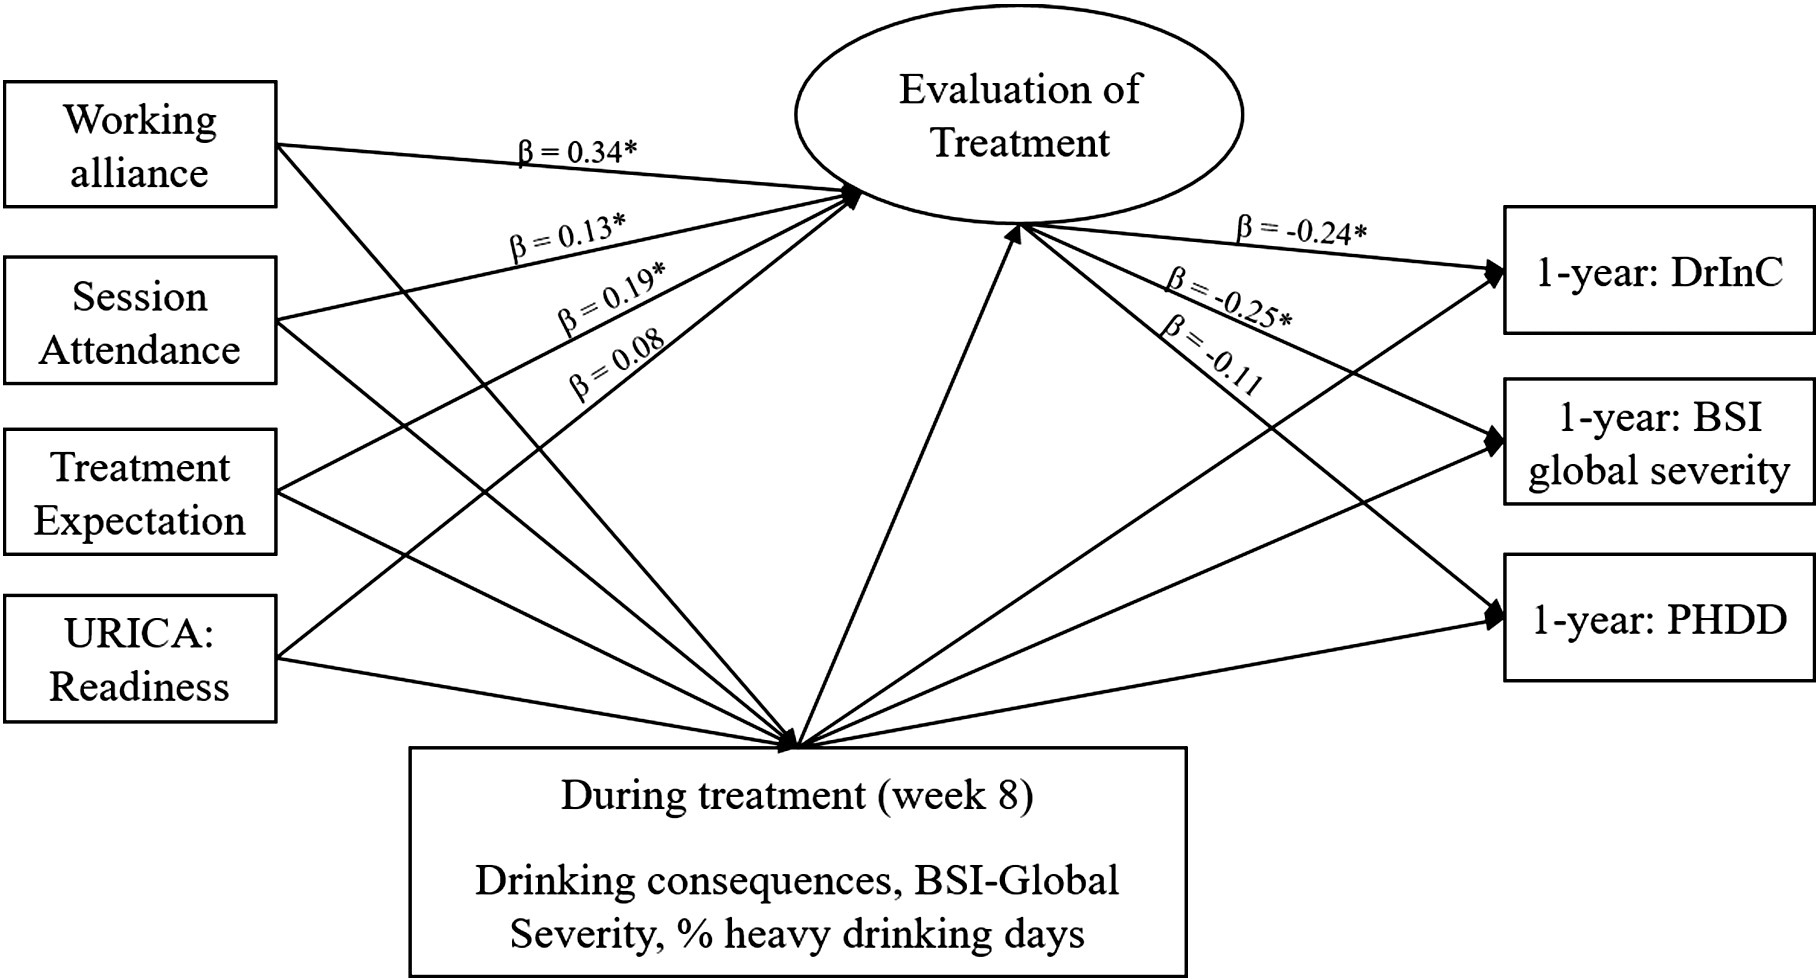 Client Evaluation of Treatment for Alcohol Use Disorder in